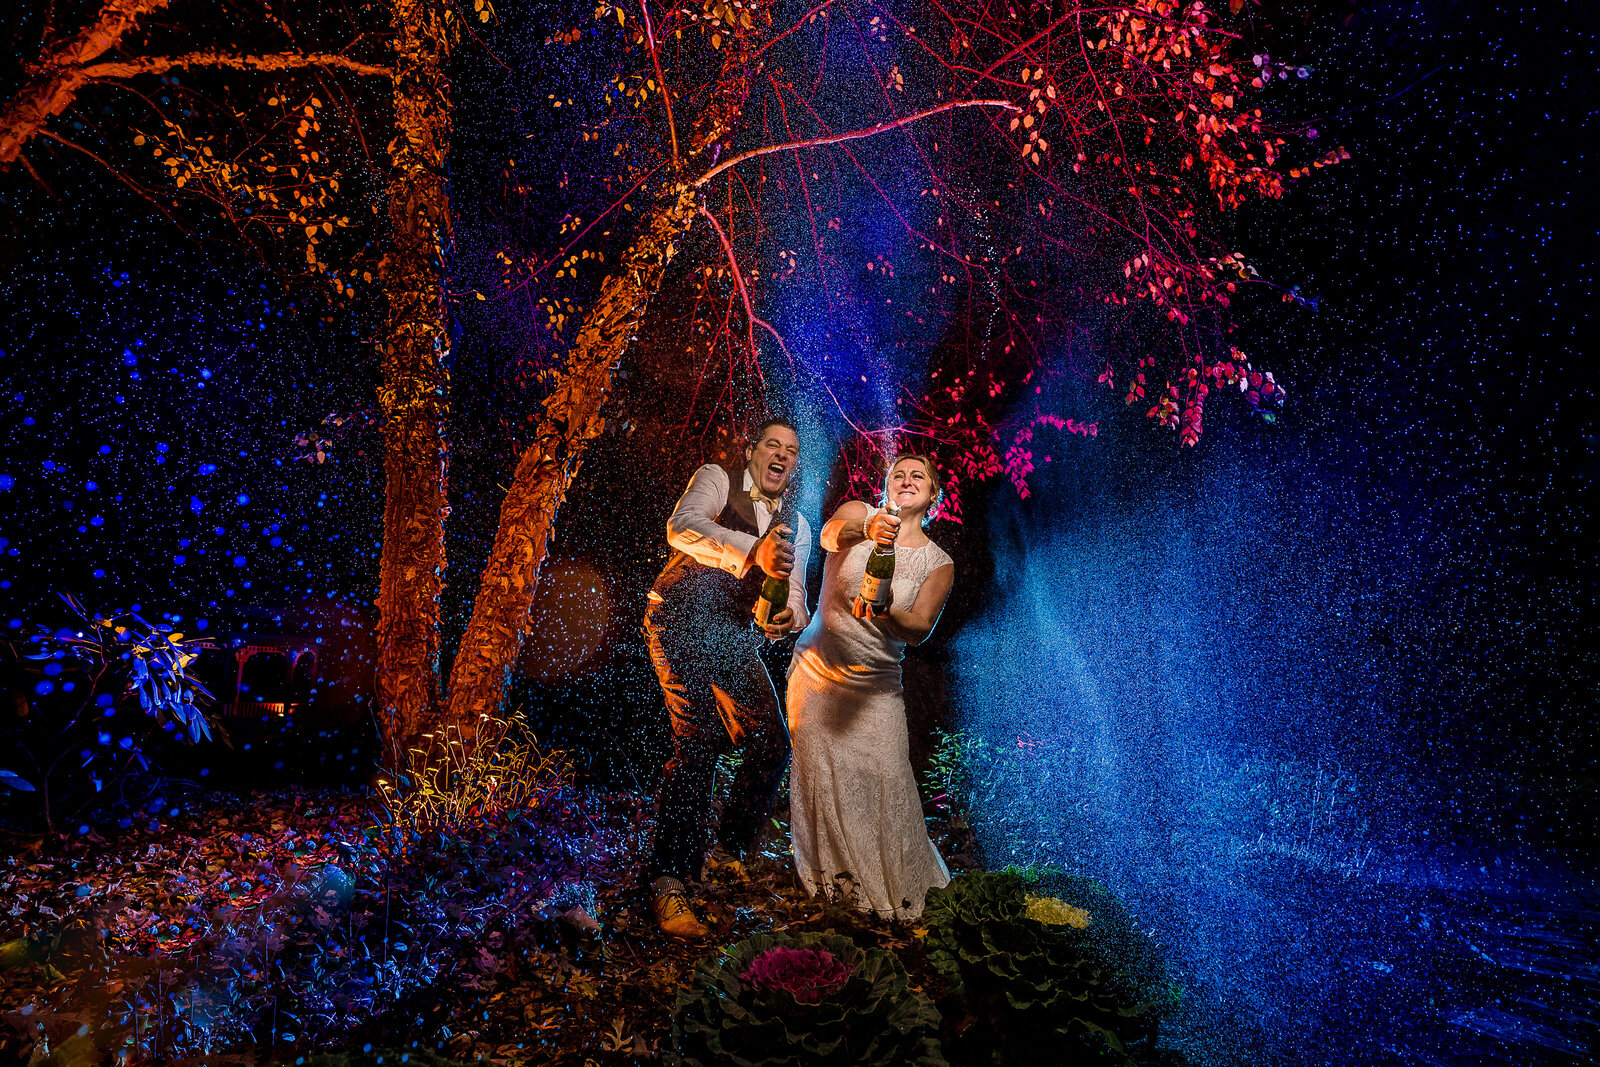 Couple sprays champagne into the air in front of a tree at old mill inn with the spray lit by colored lights